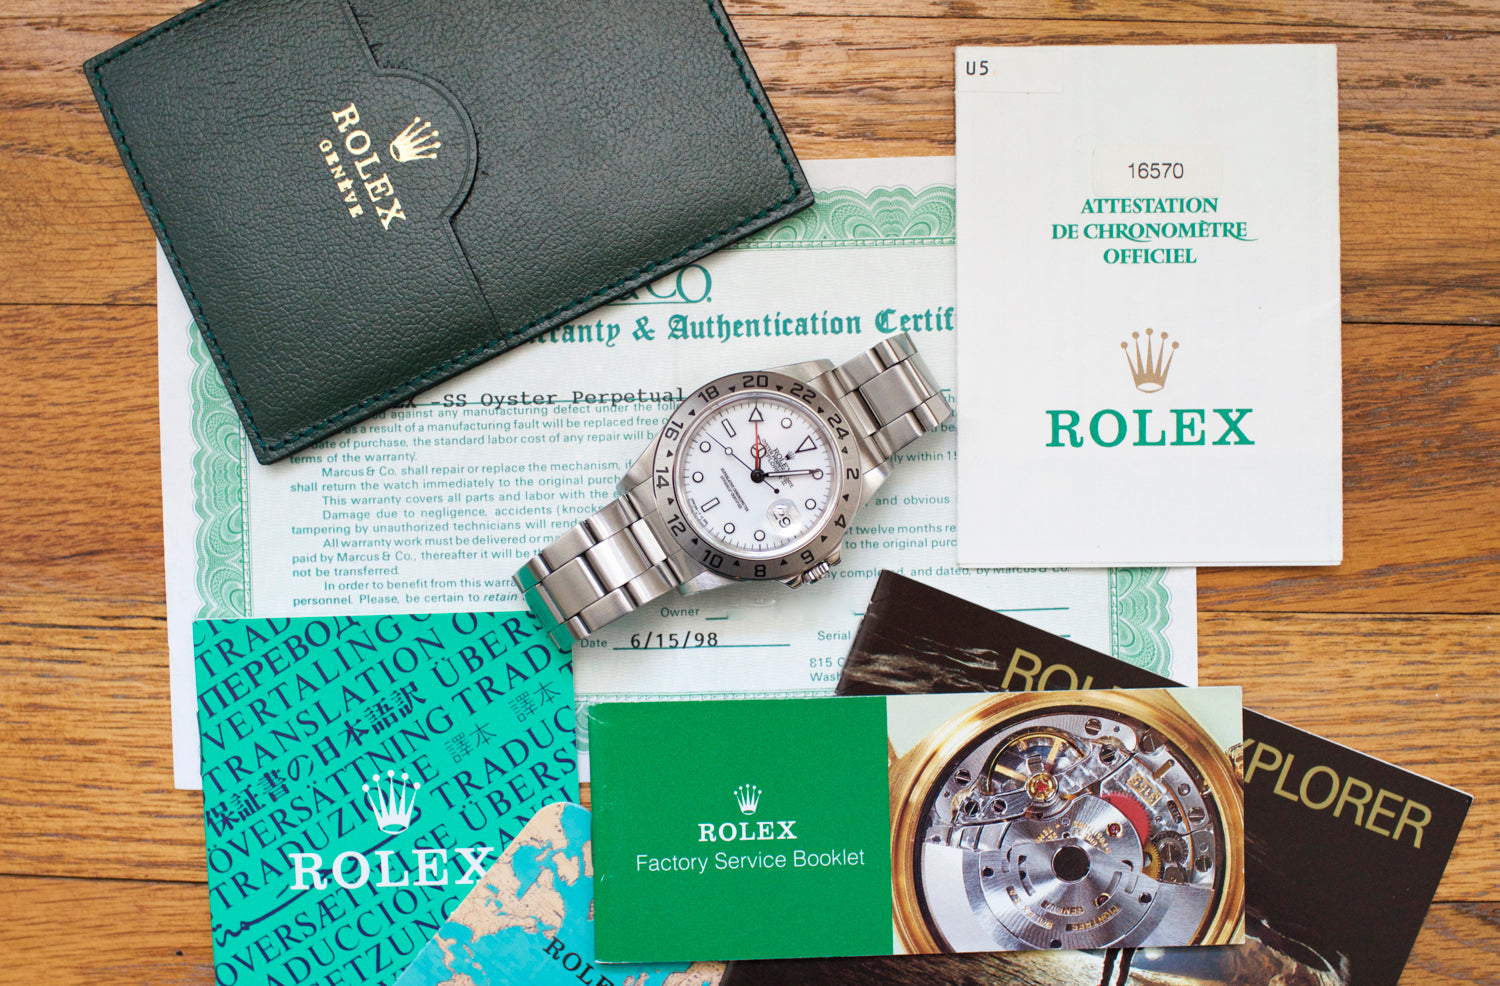 Explorer ii POLAR BOX AND PAPERS 16570